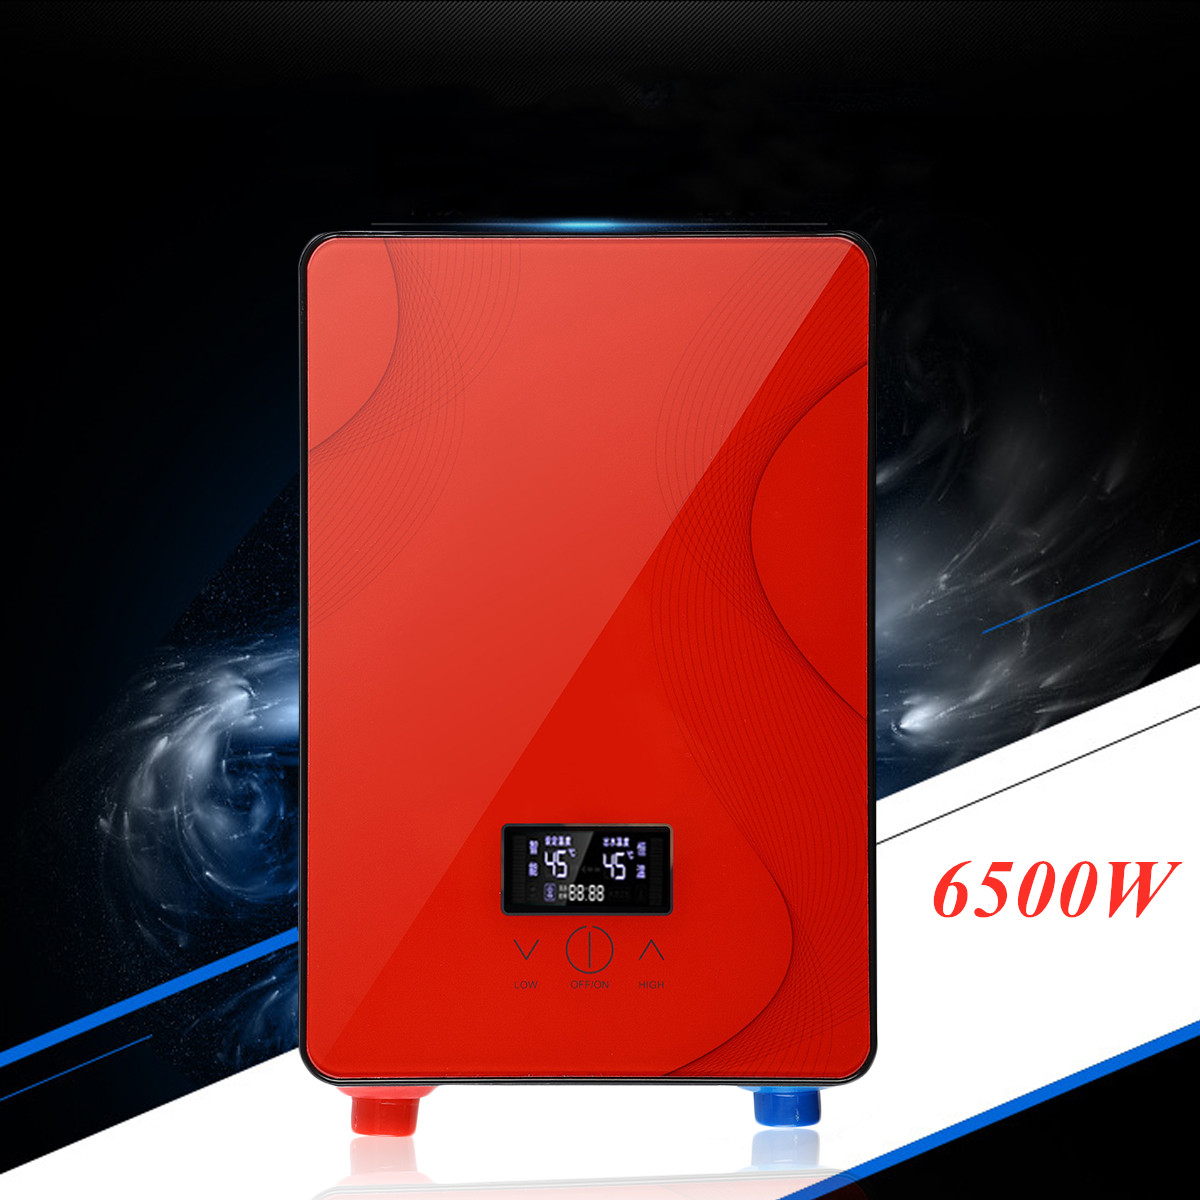 6.5KW 220V Instant Heating Electric Water Heater LED Display Electric Hot Water Heater Constant Temperature Shower Bathroom Home